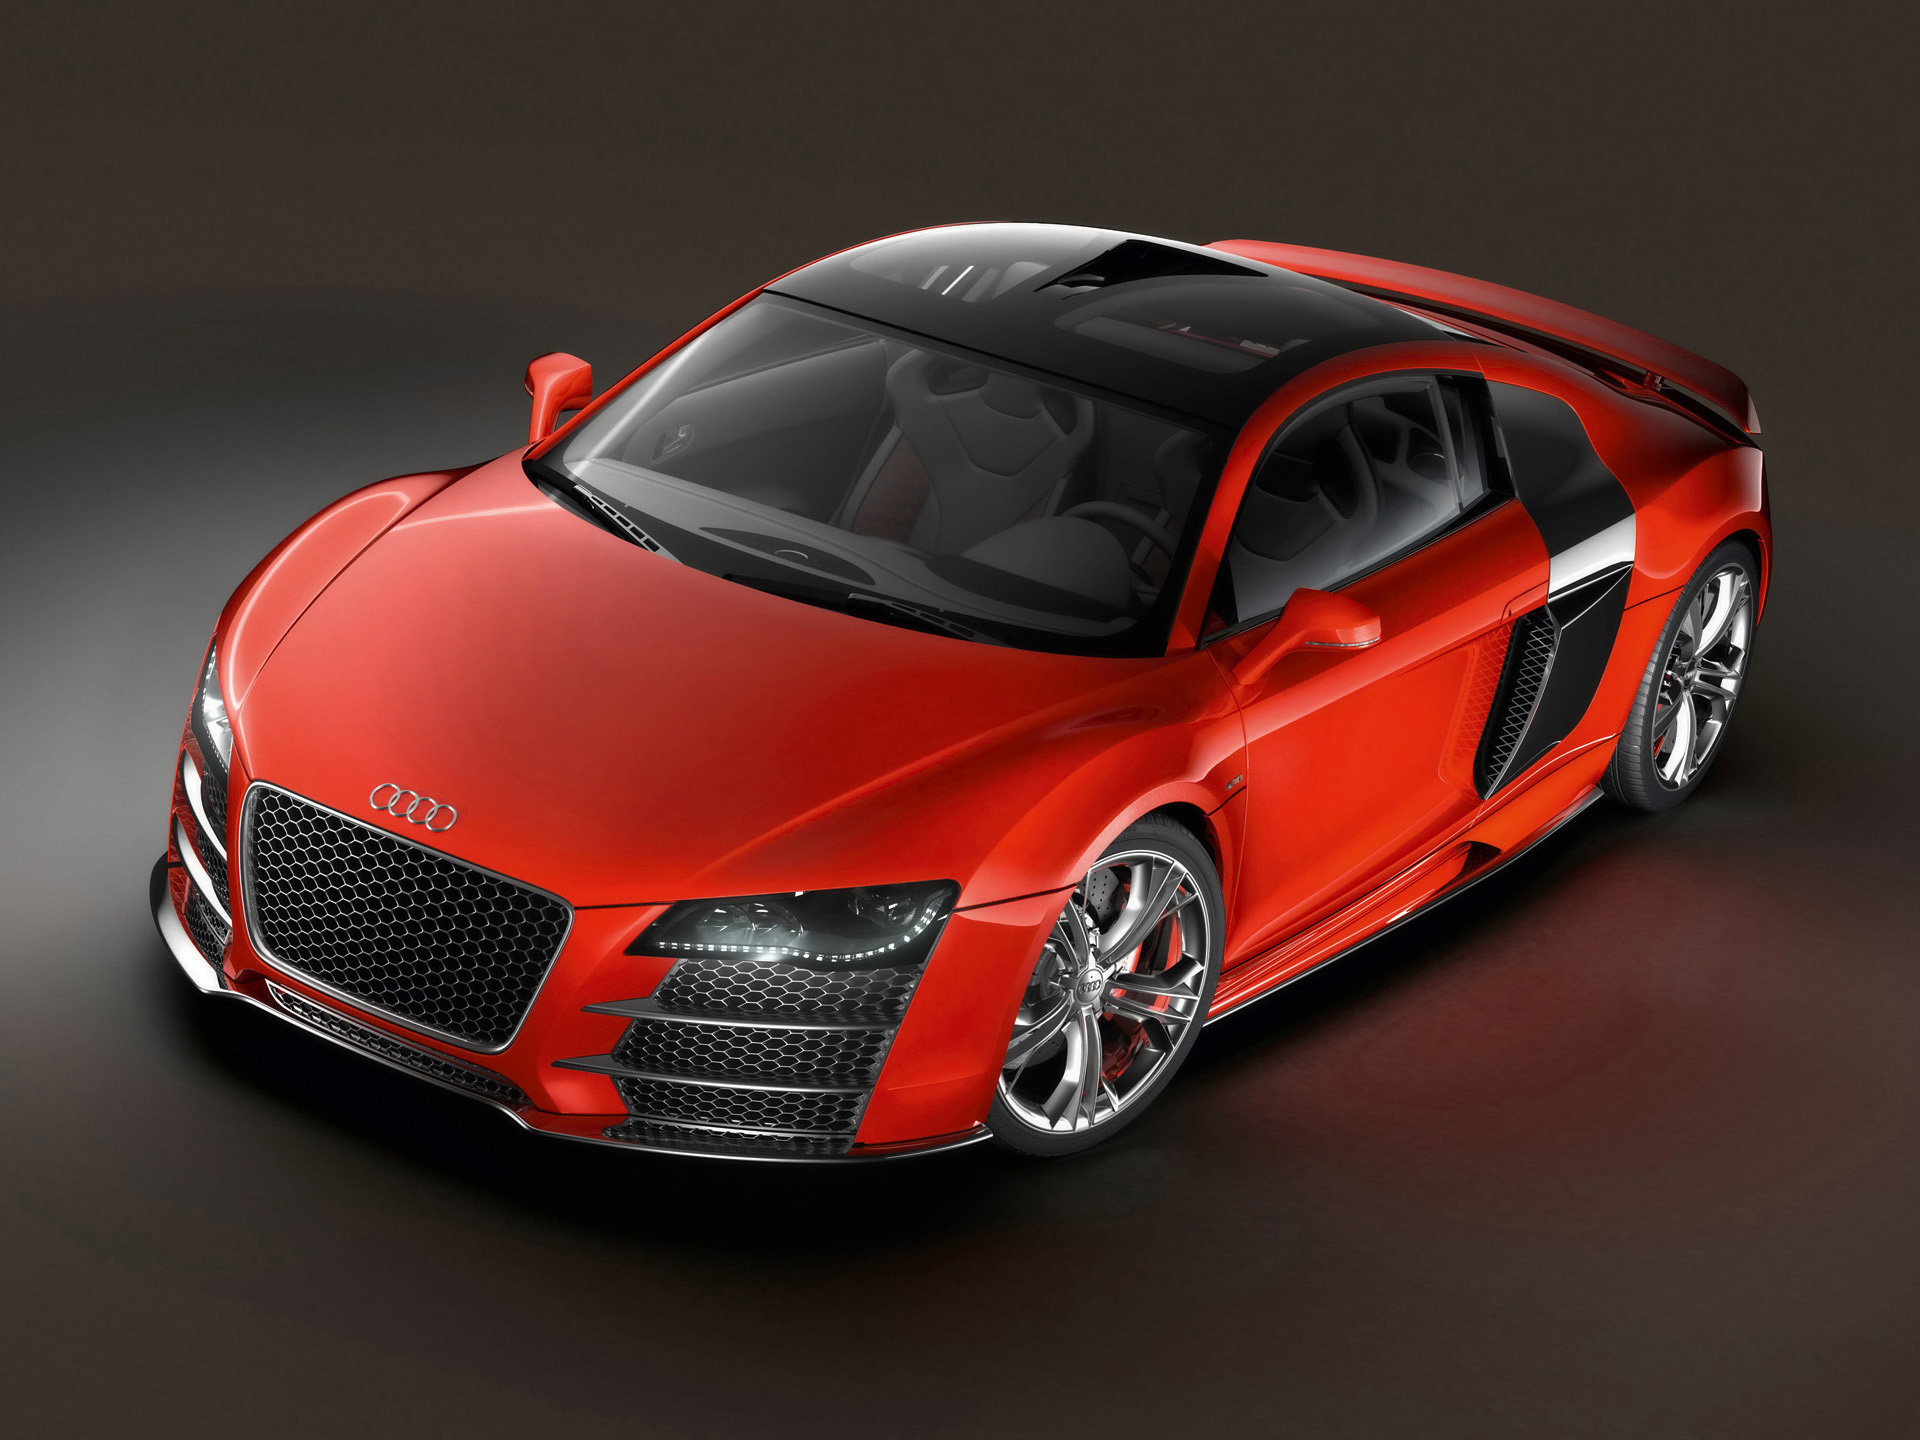 Download Desktop Wallpaper D Model Of The Audi Sports Car - Audi car 3d